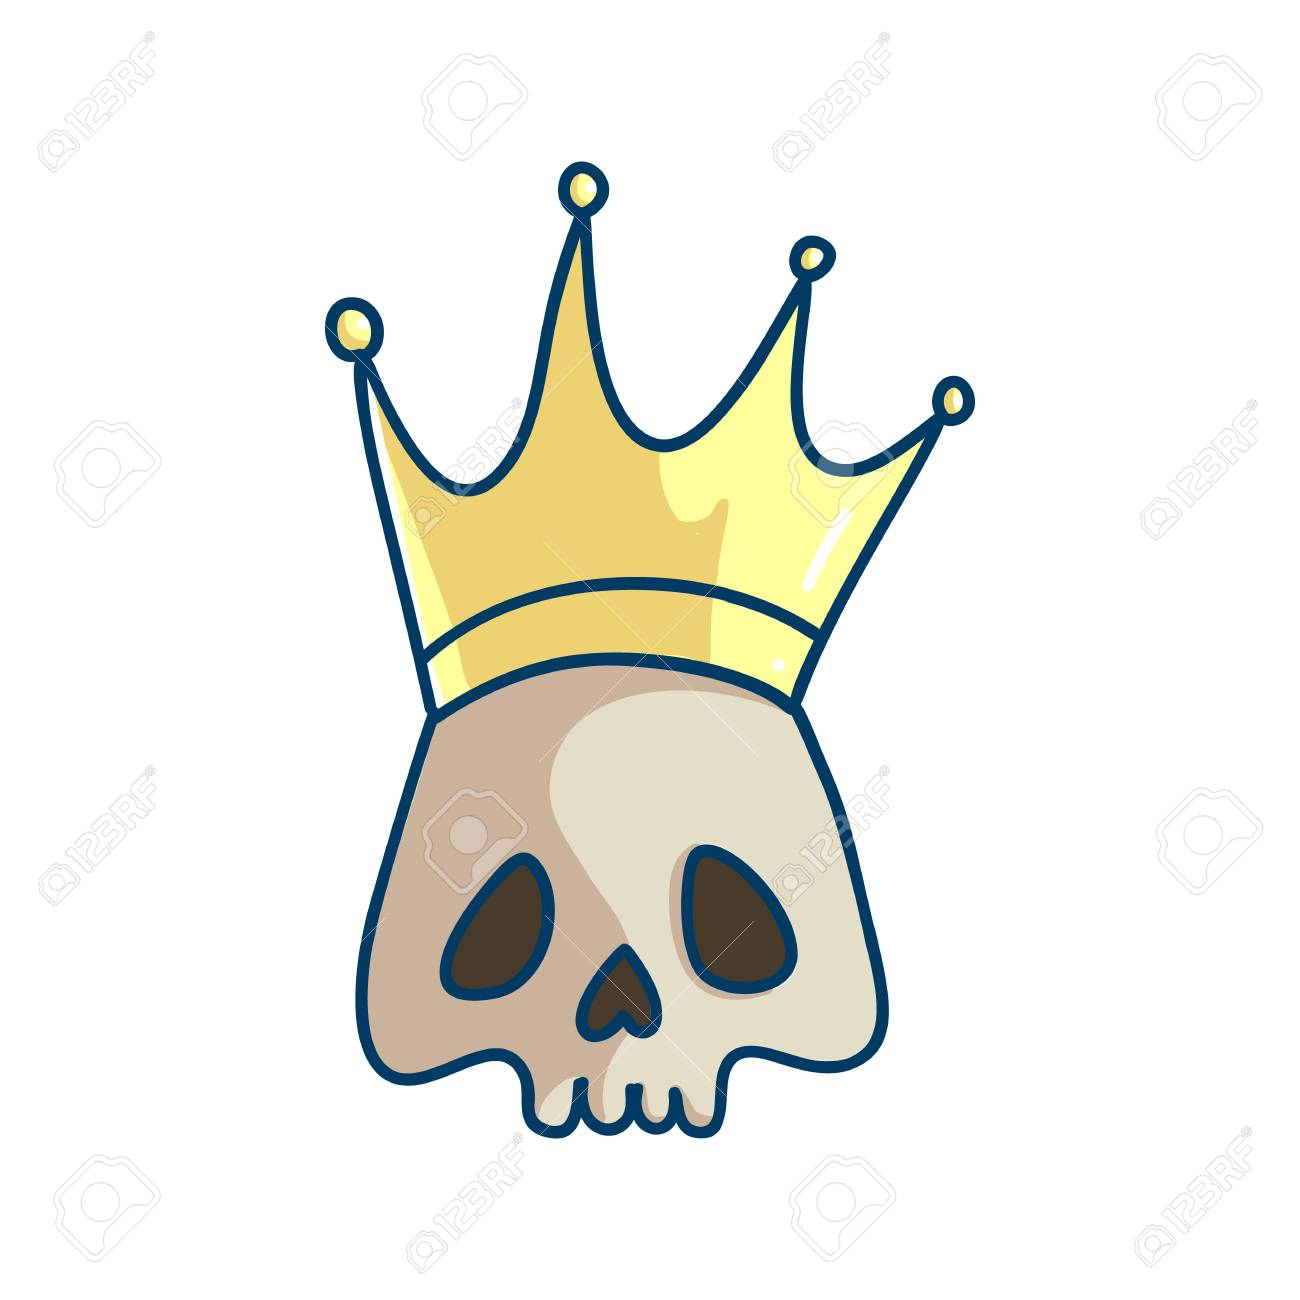 King Of The Death Skull With Crown Temporary Tattoo Template Royalty Free Cliparts Vectors And Stock Illustration Image 106587803 Gray metal chain illustration, chain openoffice draw, cartoon silver chains to pull the material free, cartoon character, free logo design template, cartoons png. king of the death skull with crown temporary tattoo template